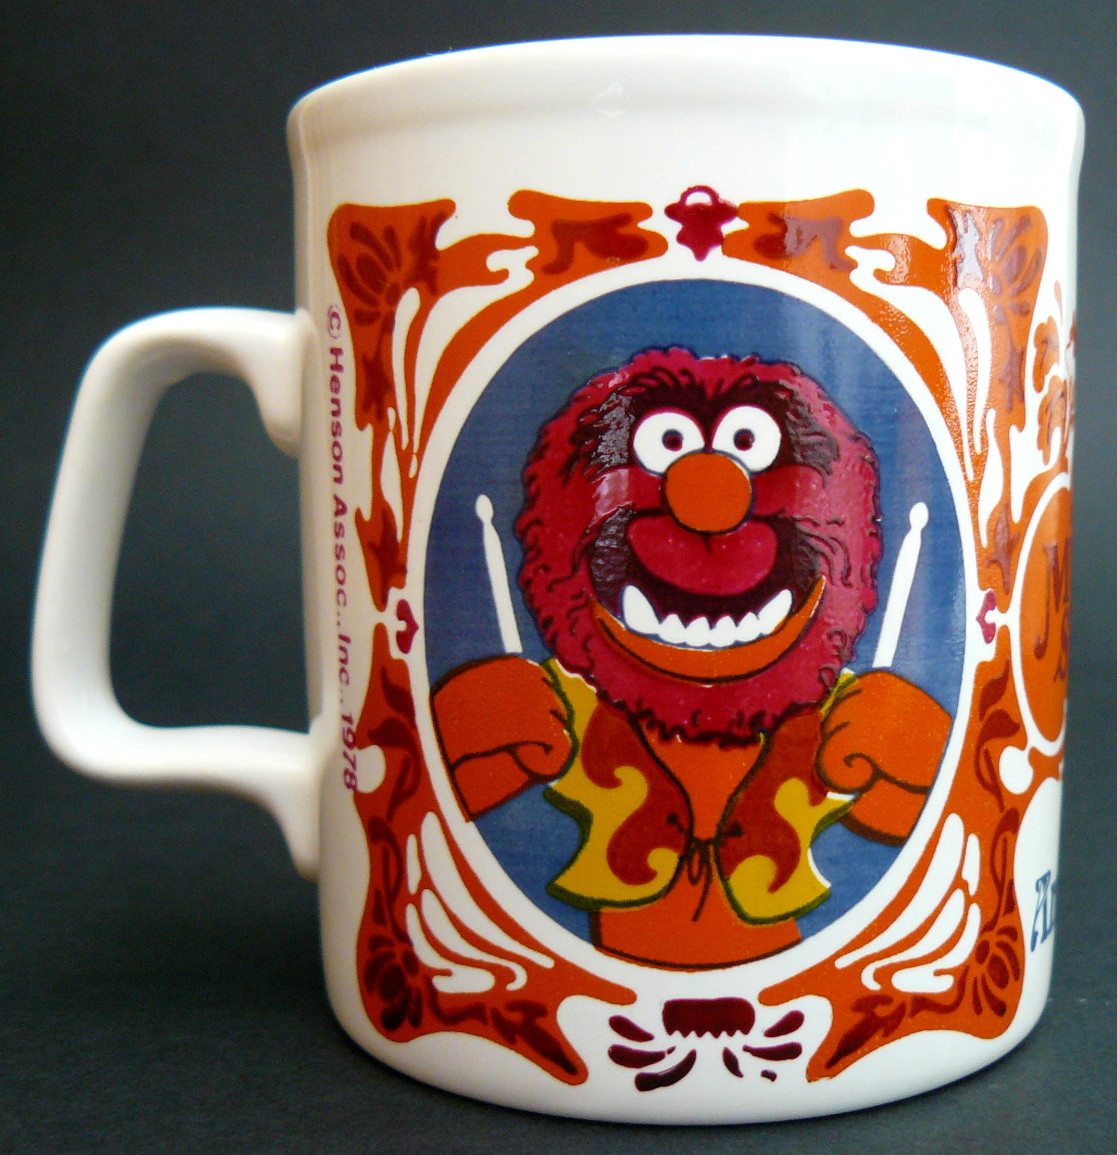 Kiln Craft Muppet Show Mugs